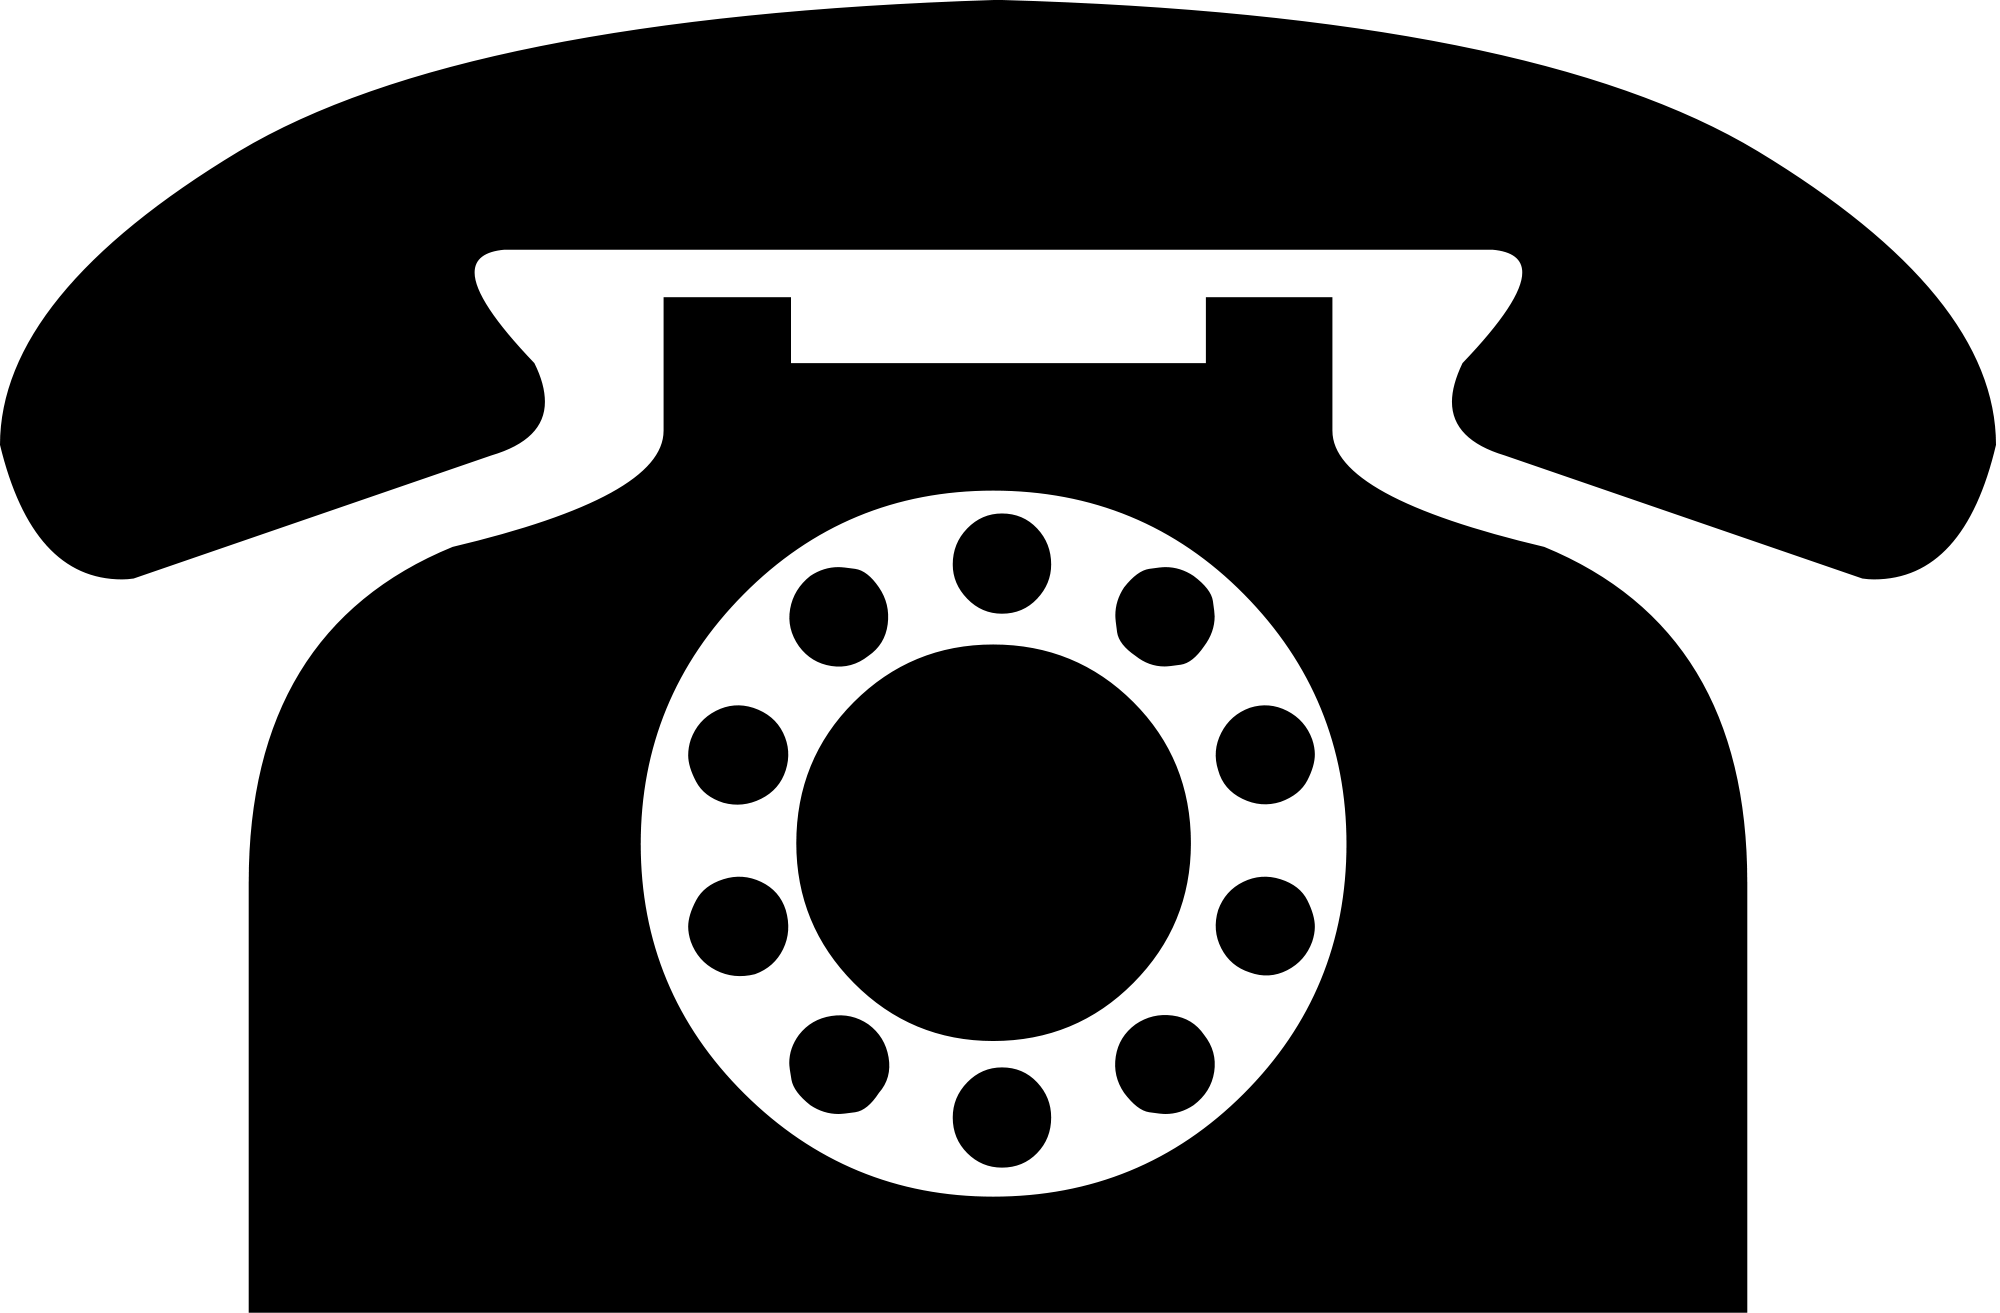 Vintage Black Phone Icon transparent PNG